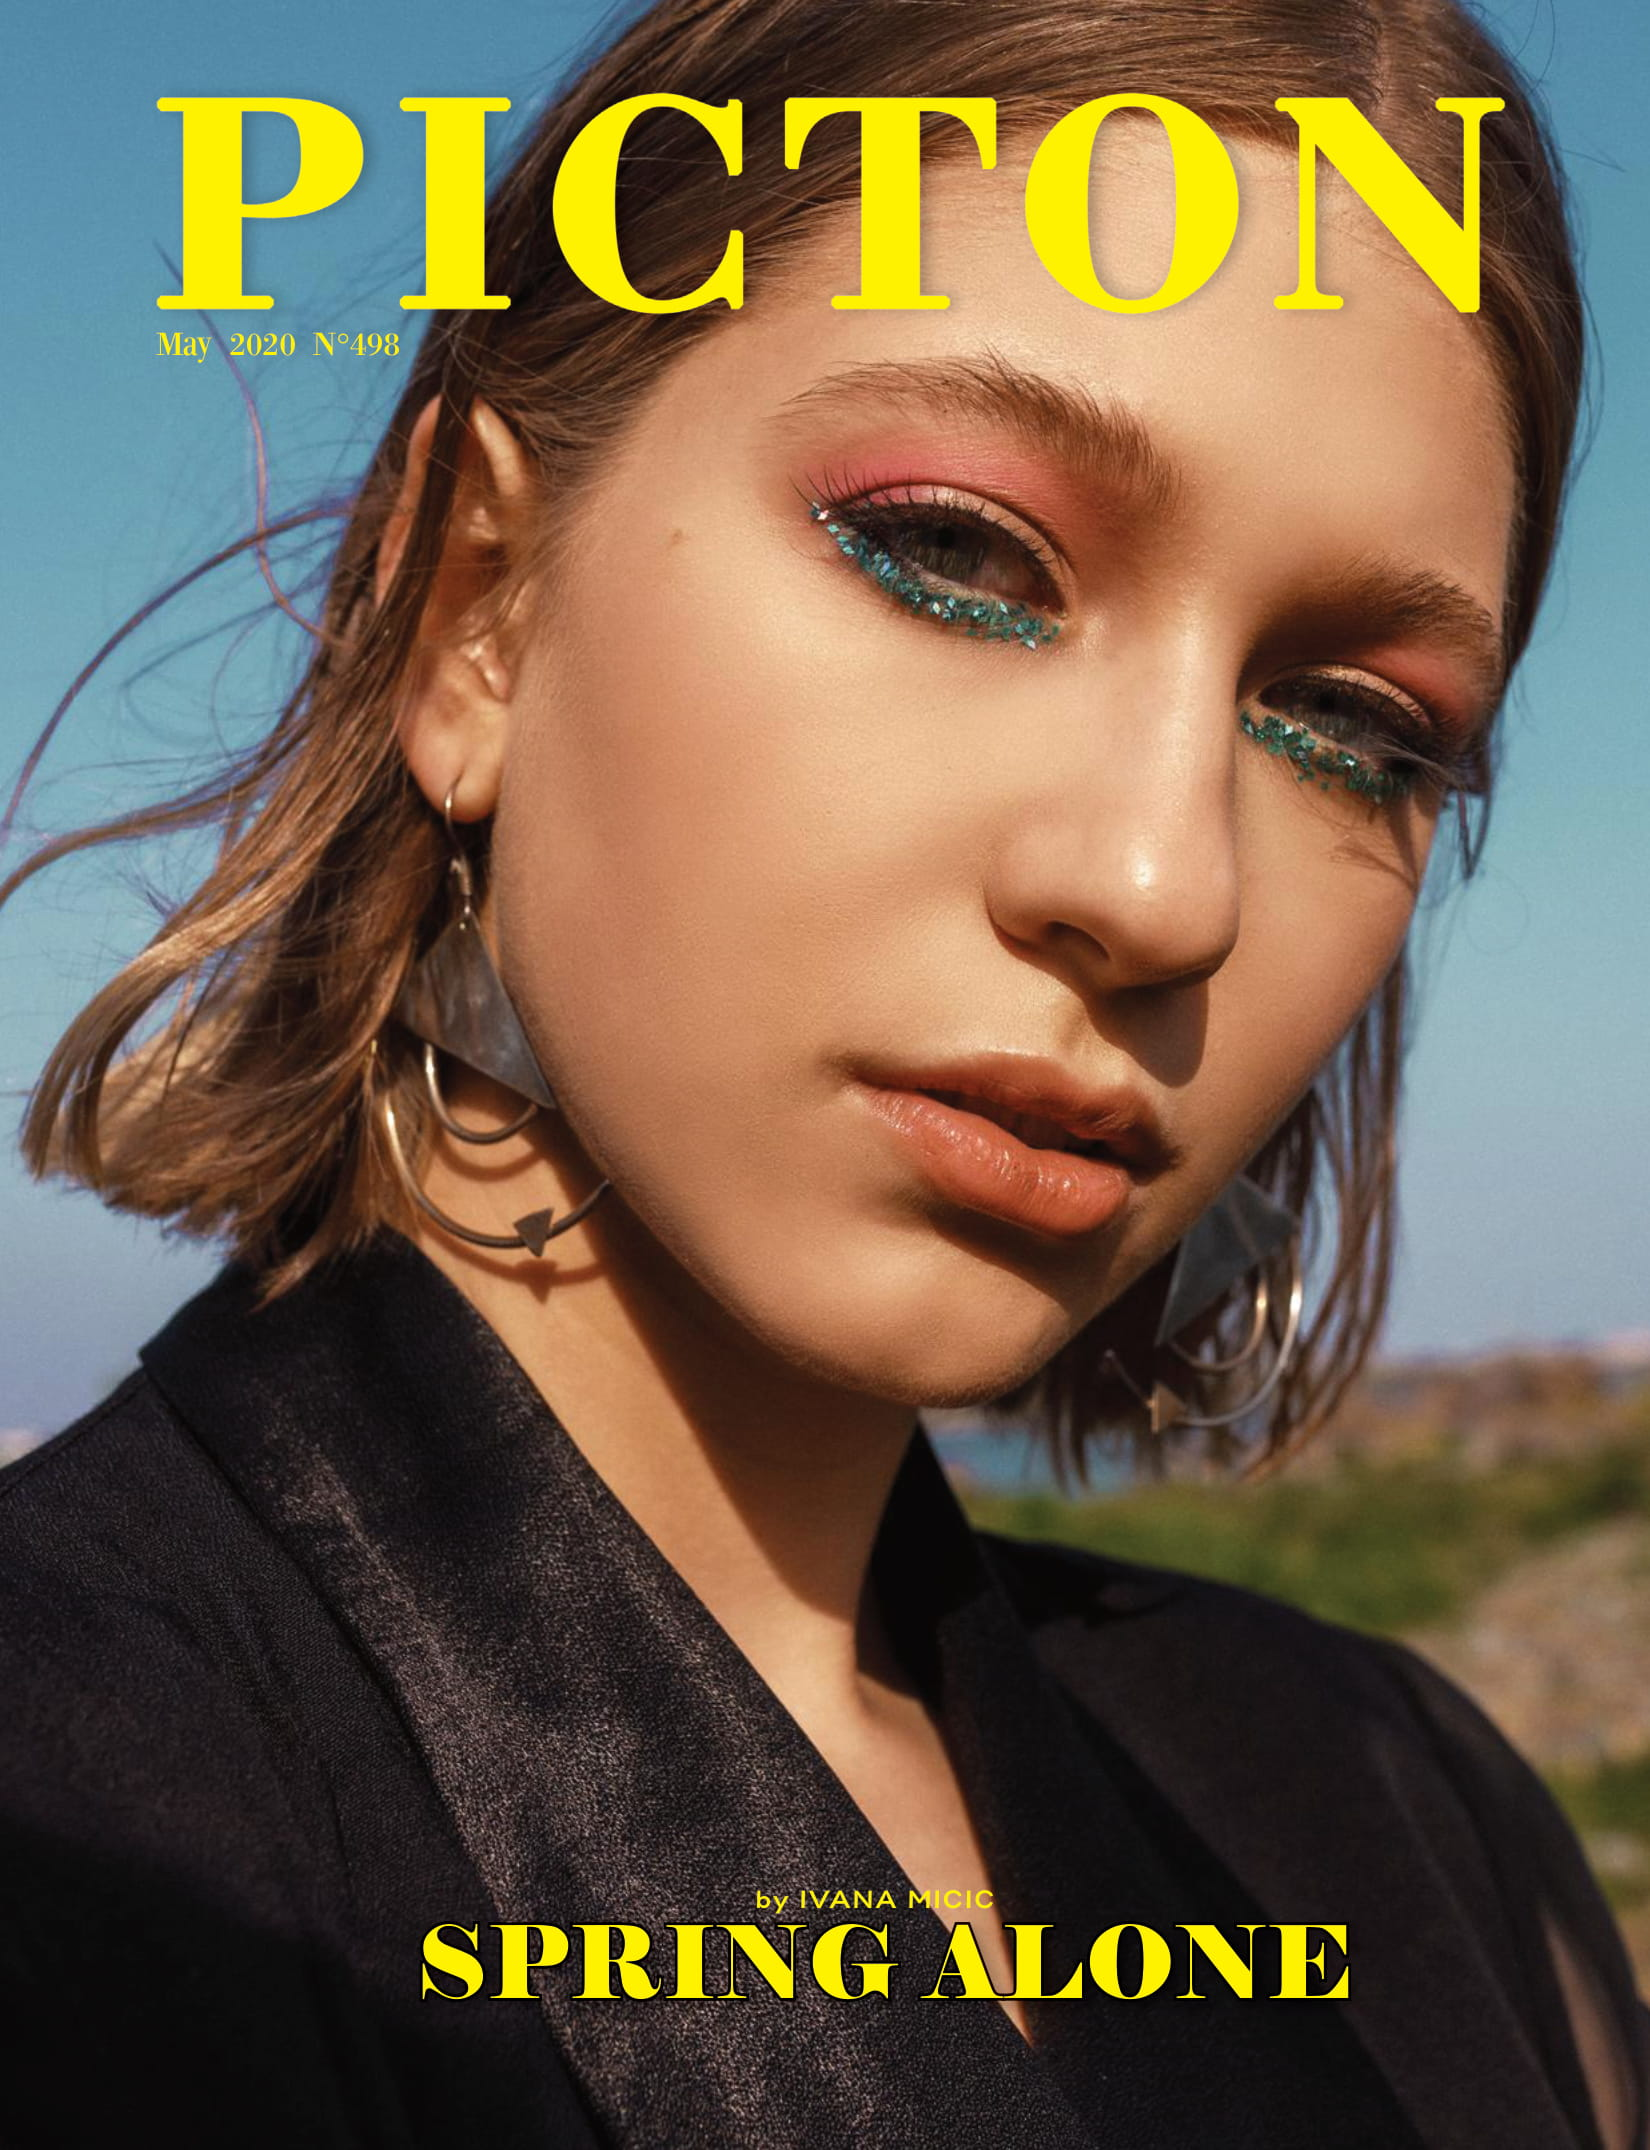 May_2020_Picton_Magazine_MAY_2020_N498_Cover_4-01